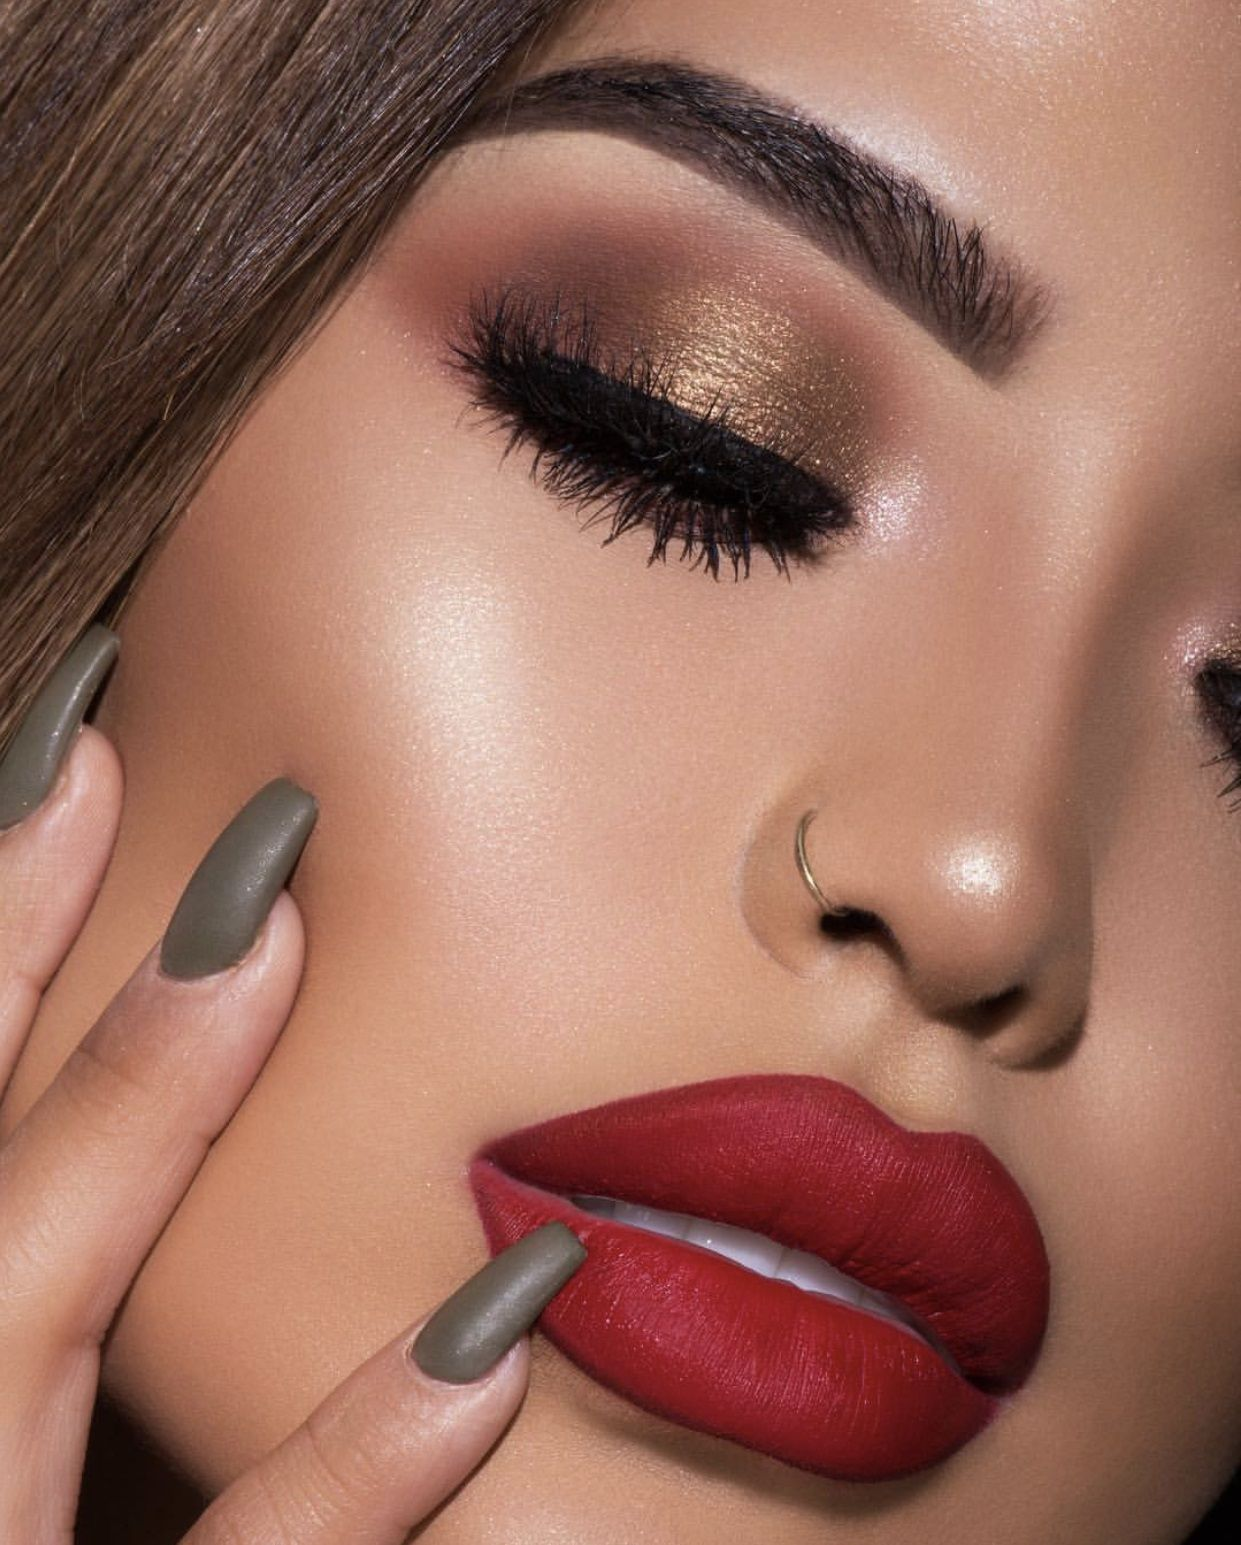 Matte Red Lips And Golden Smokey Eye Look By @iluvsarahii